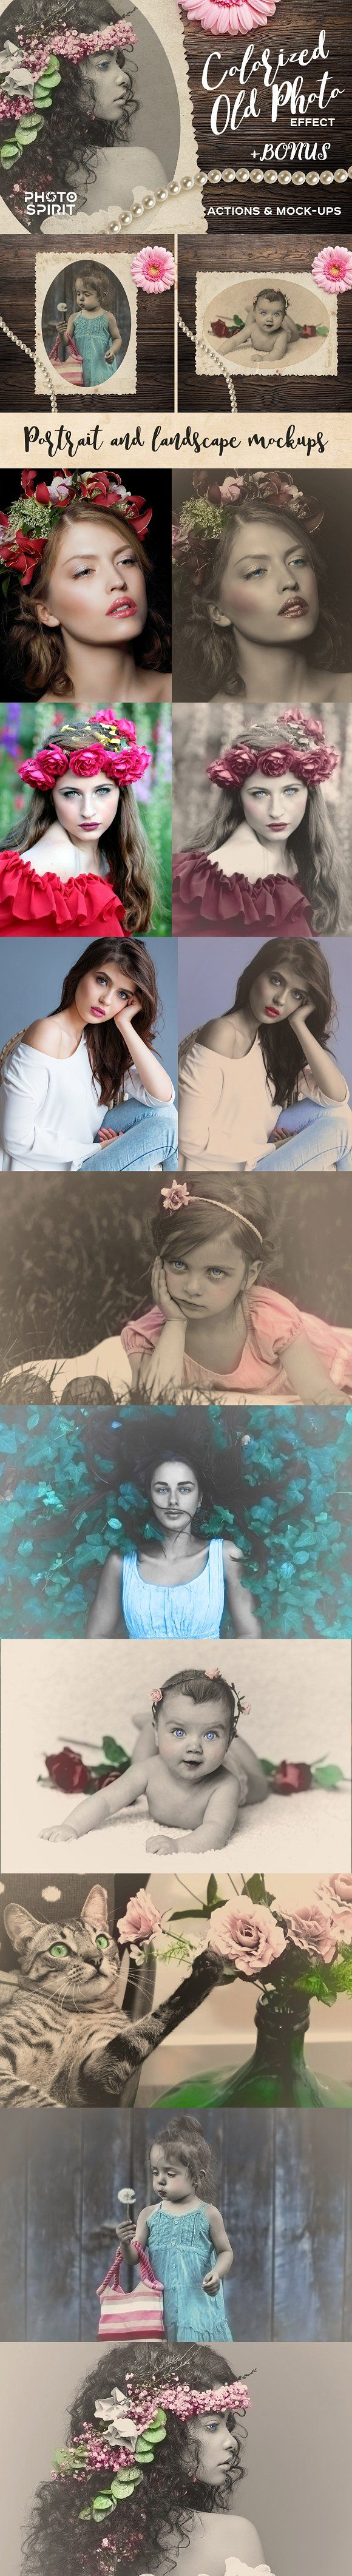 Colorized Old Photo Effect Photoshop by PhotoSpirit on @creativemarket